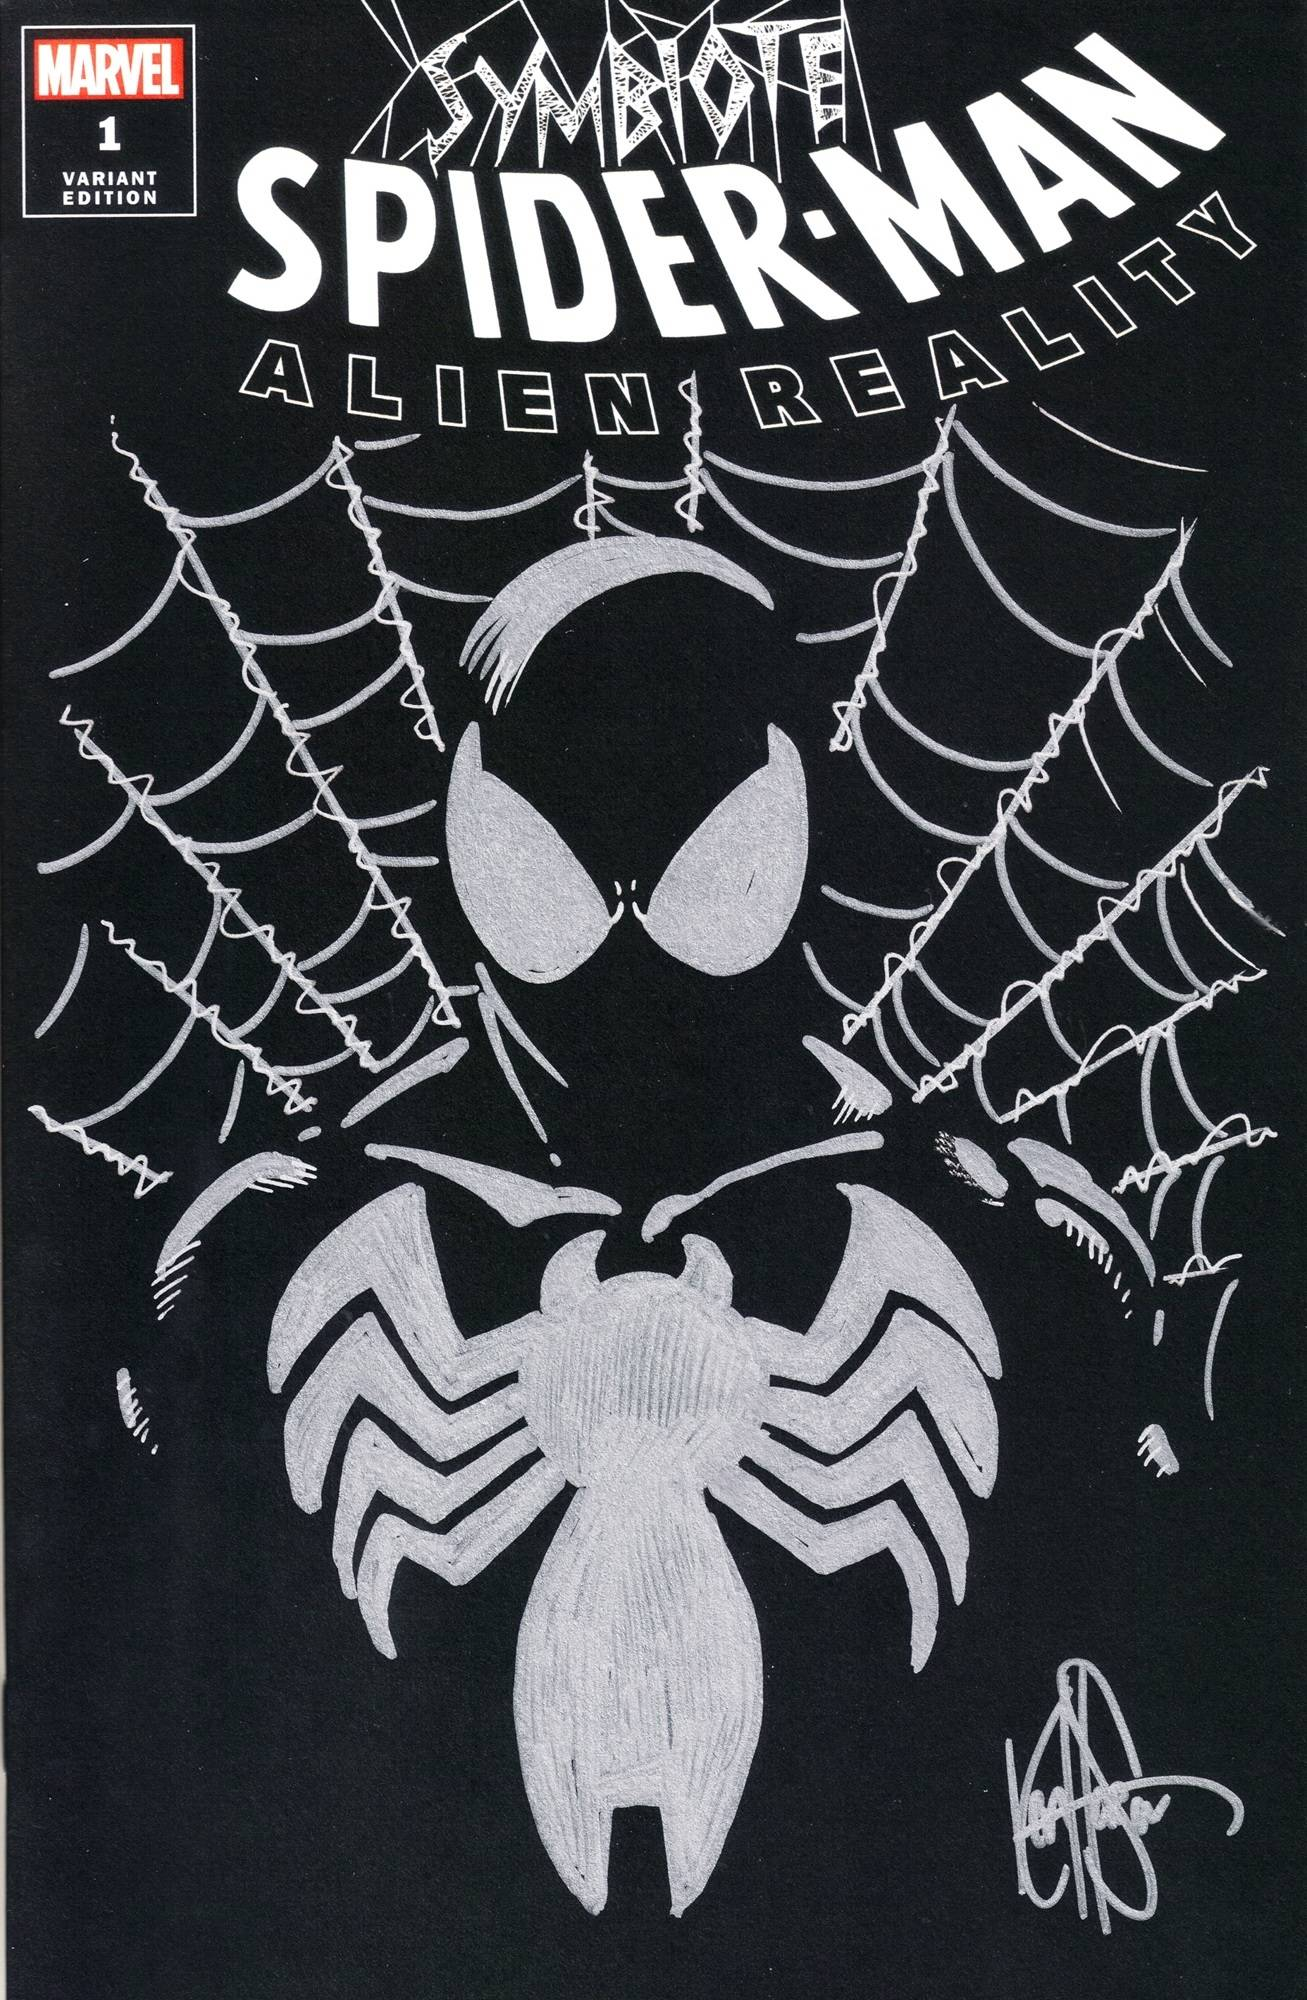 DF SYMBIOTE SPIDER-MAN ALIEN REALITY SGN REMARK HAESER